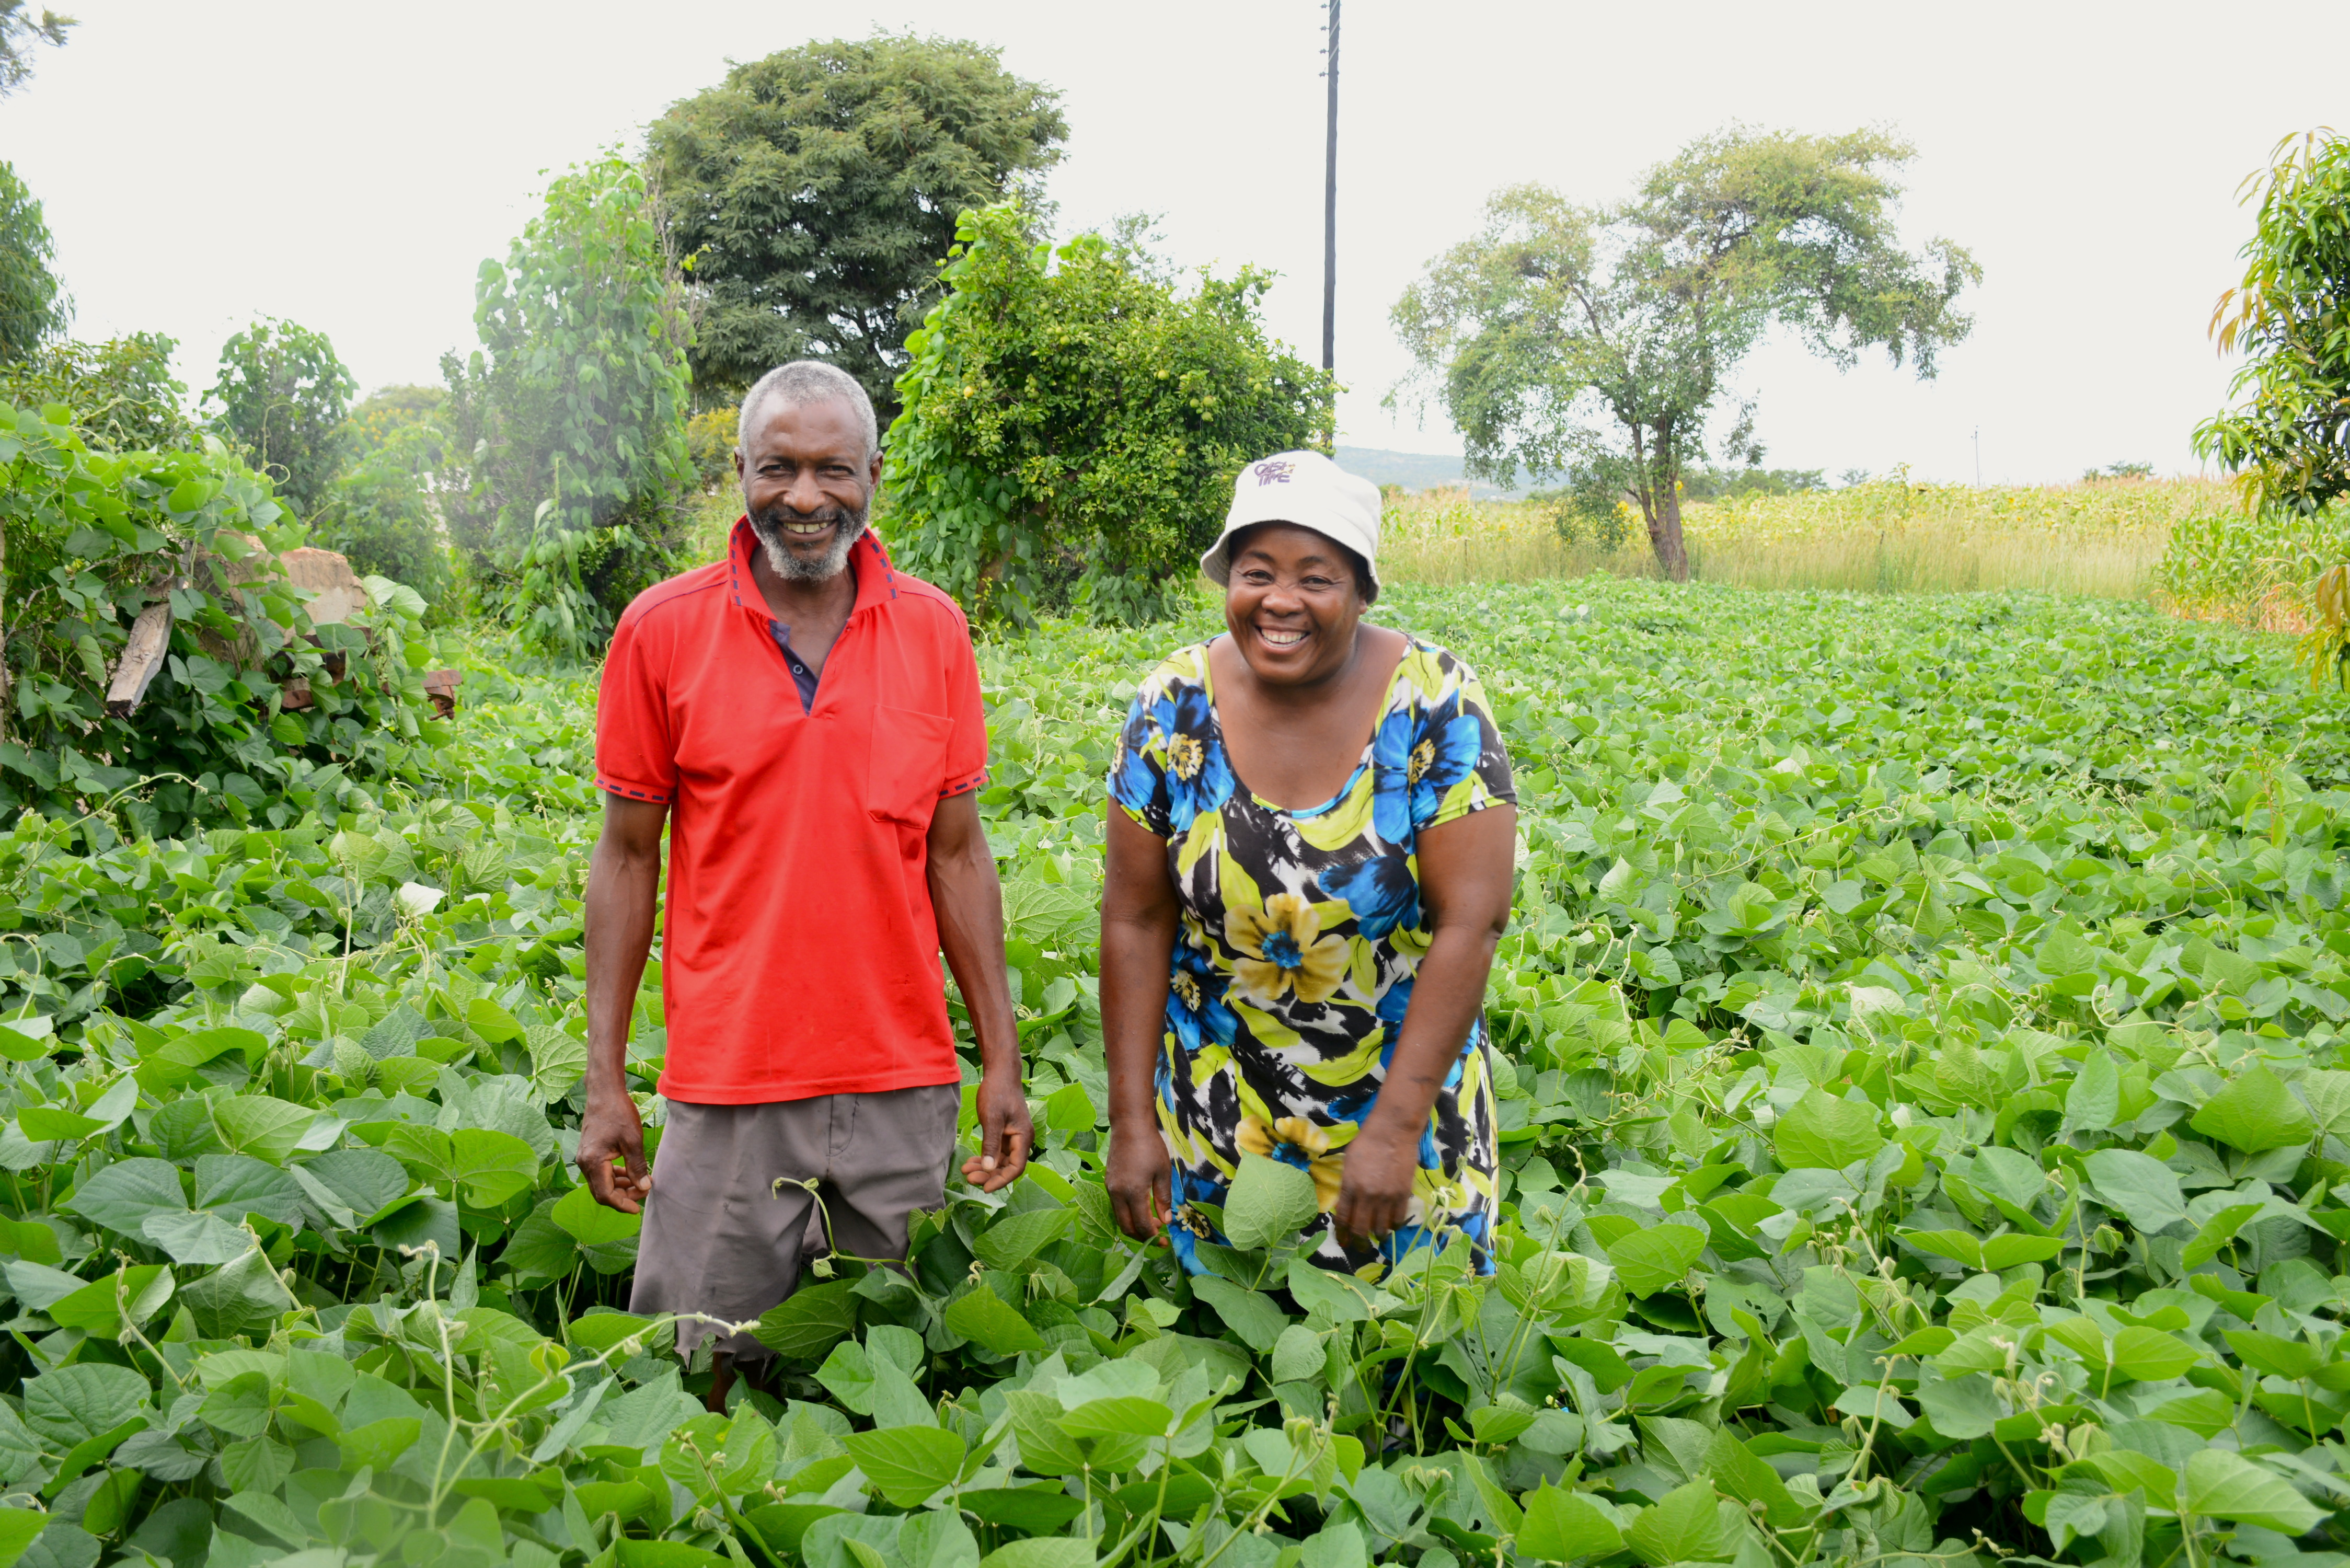 Kumbirai Chimbadzwa (left) and Lilian Chimbadzwa stand on their field growing green manure cover crops. (Photo: Shiela Chikulo/CIMMYT)